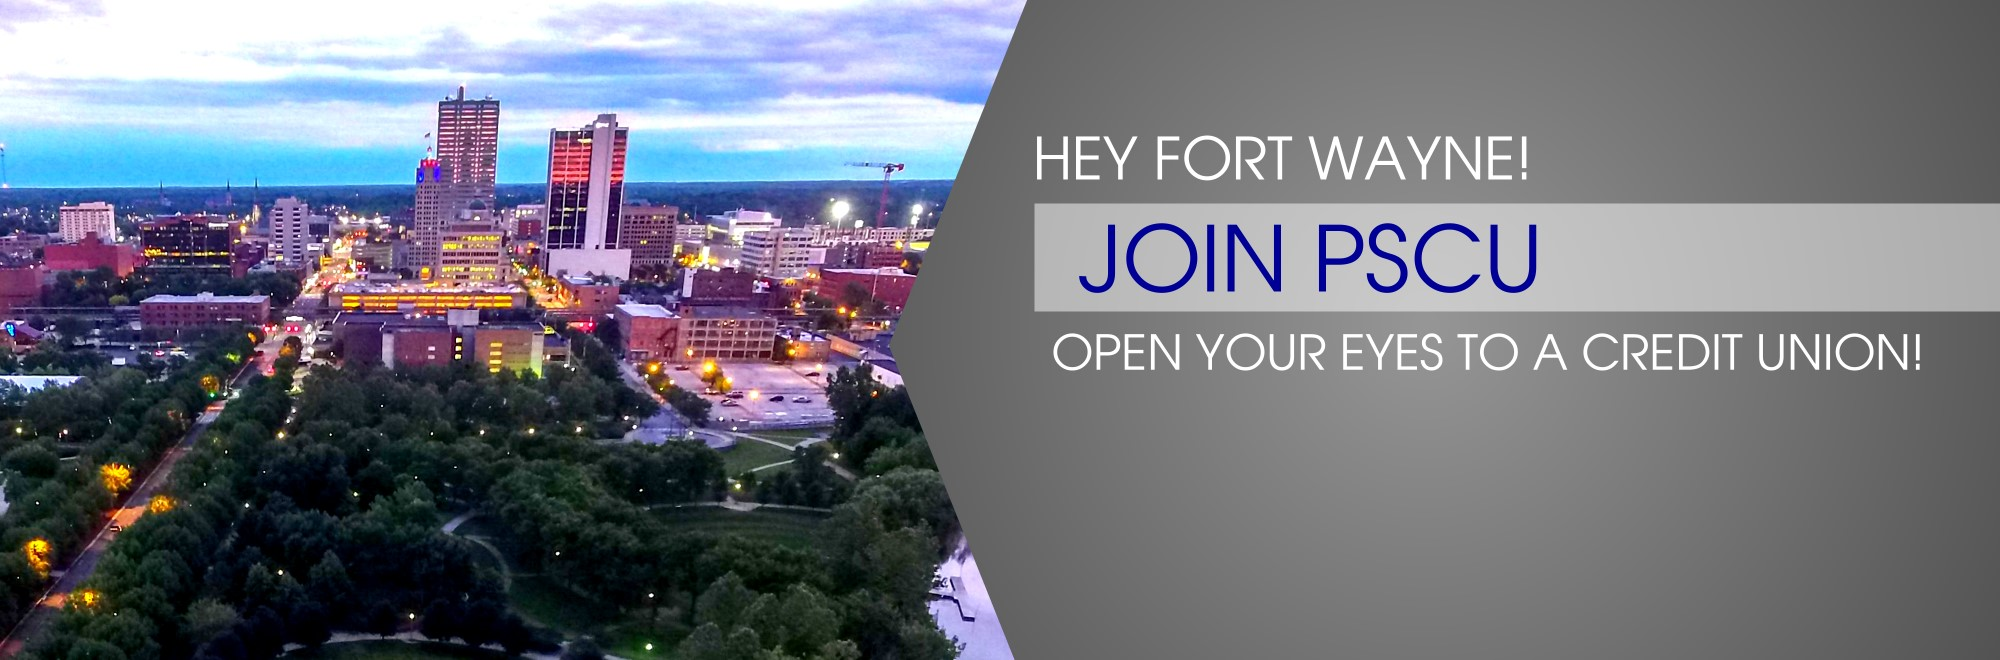 Hey Fort Wayne!  JOIN PSCU!  OPEN YOUR EYES TO A CREDIT UNION! LEARN MORE ABOUT JOINING PSCU